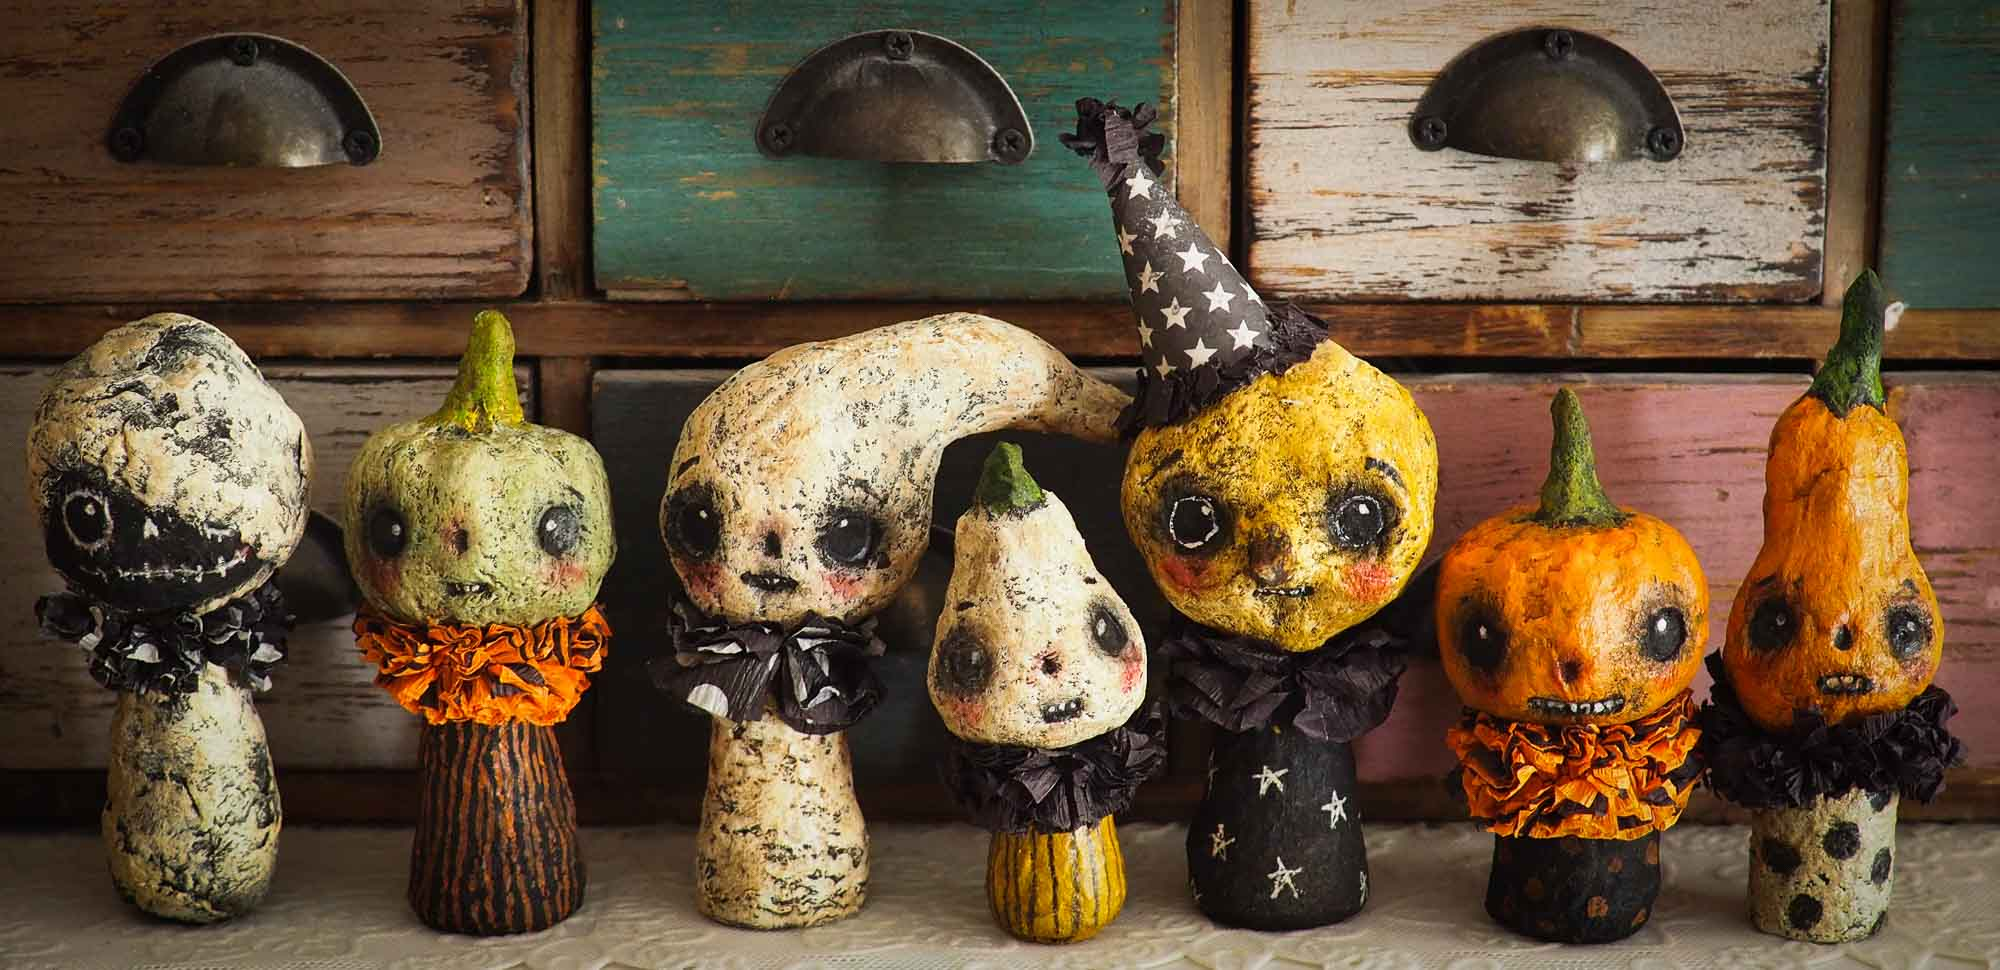 A collection of adorable Danita original kawaii kokeshi miniature dolls. Halloween art! Danita made ghosts, jack-o-lanterns, pumpkins, witches and more.